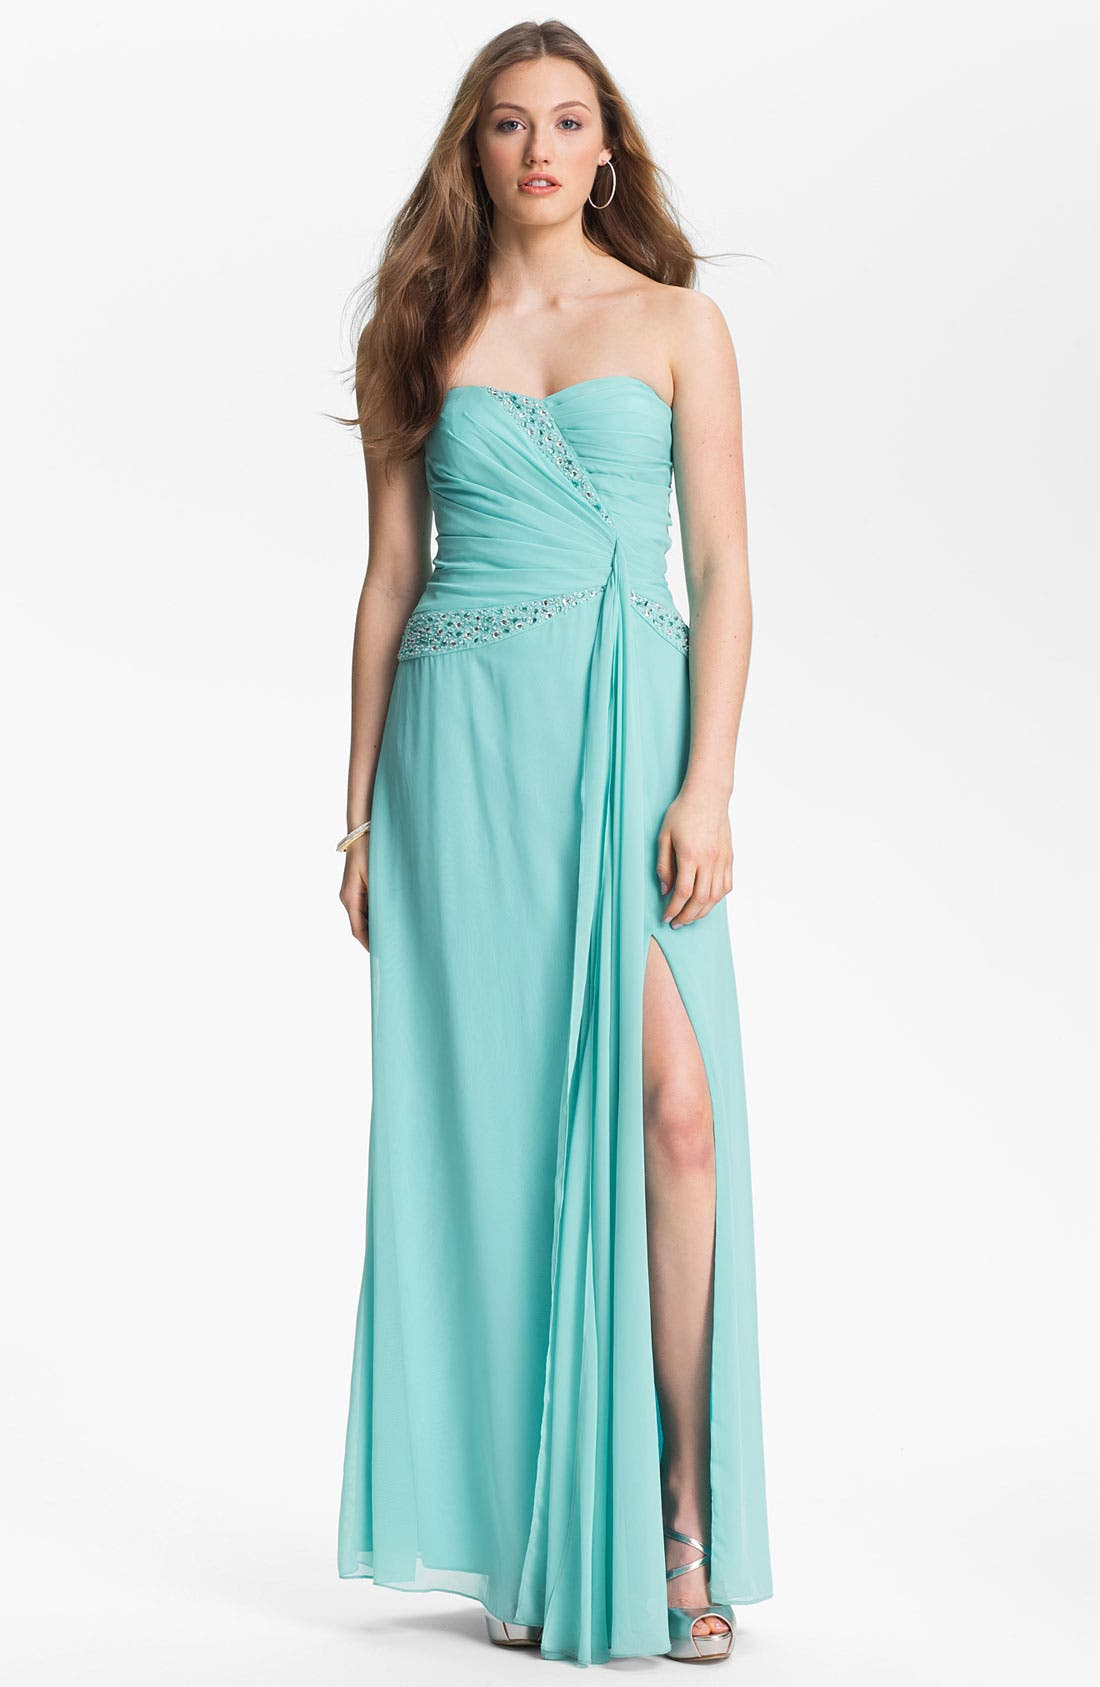 Alternate Image 1 Selected - Hailey by Adrianna Papell Jeweled Chiffon Dress